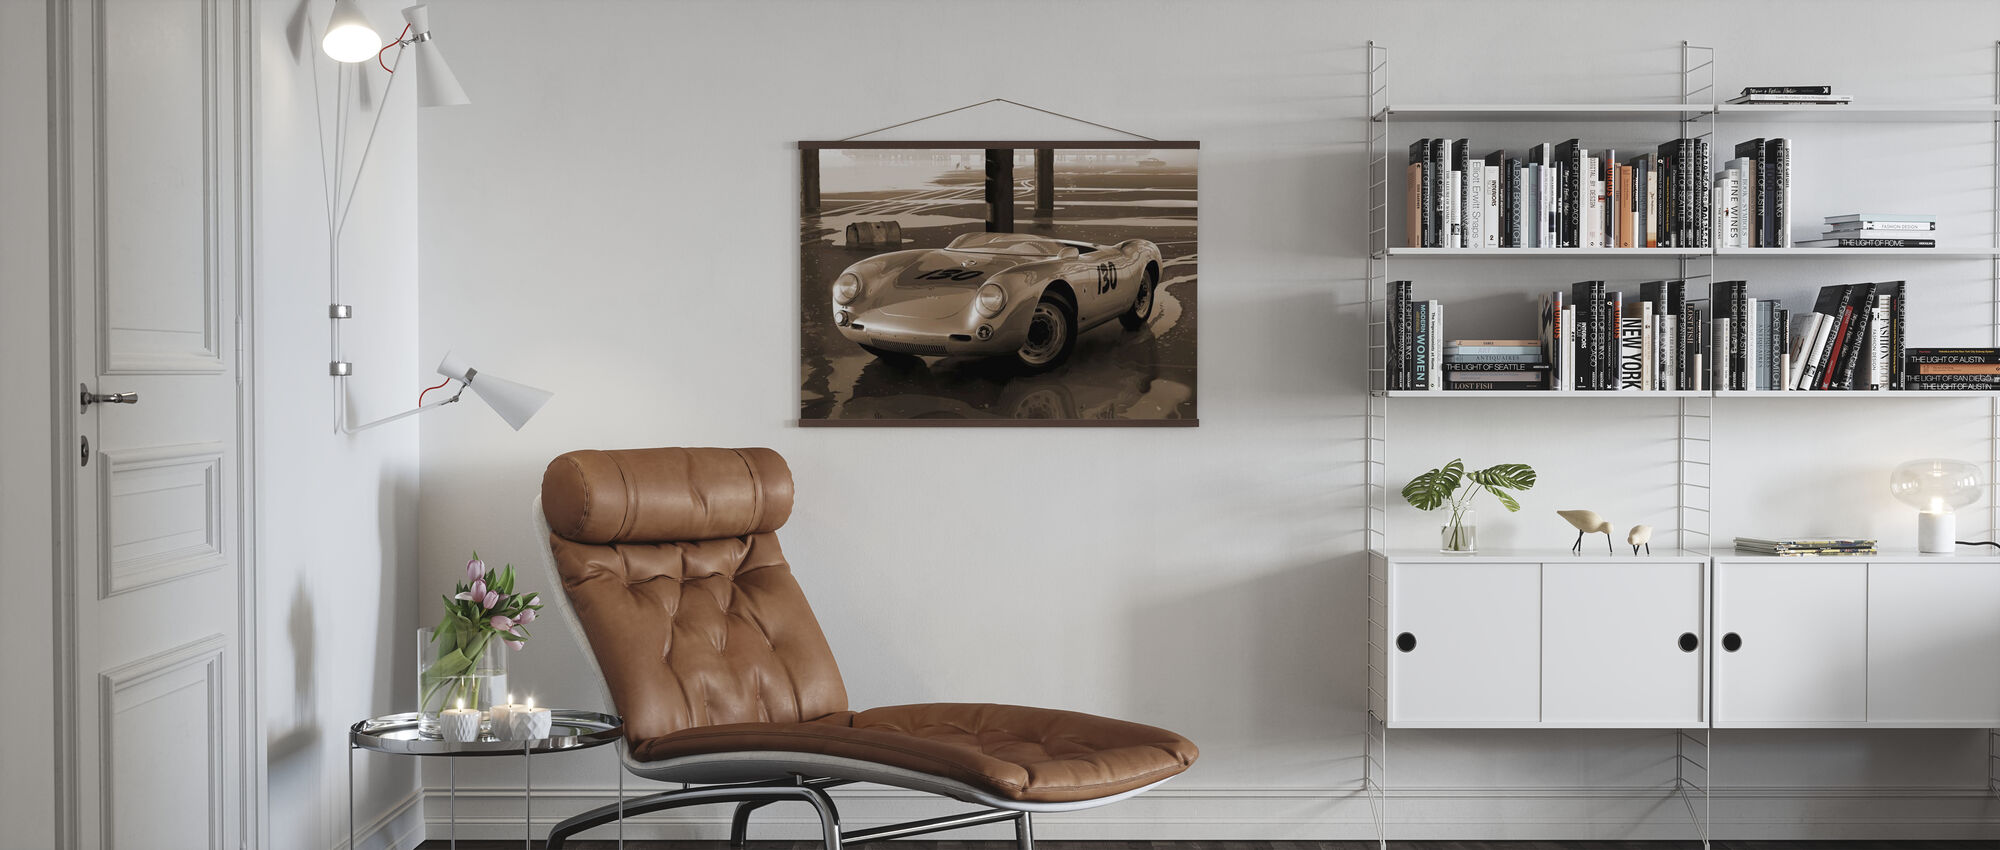 Jimmys car Sepia - Poster - Living Room